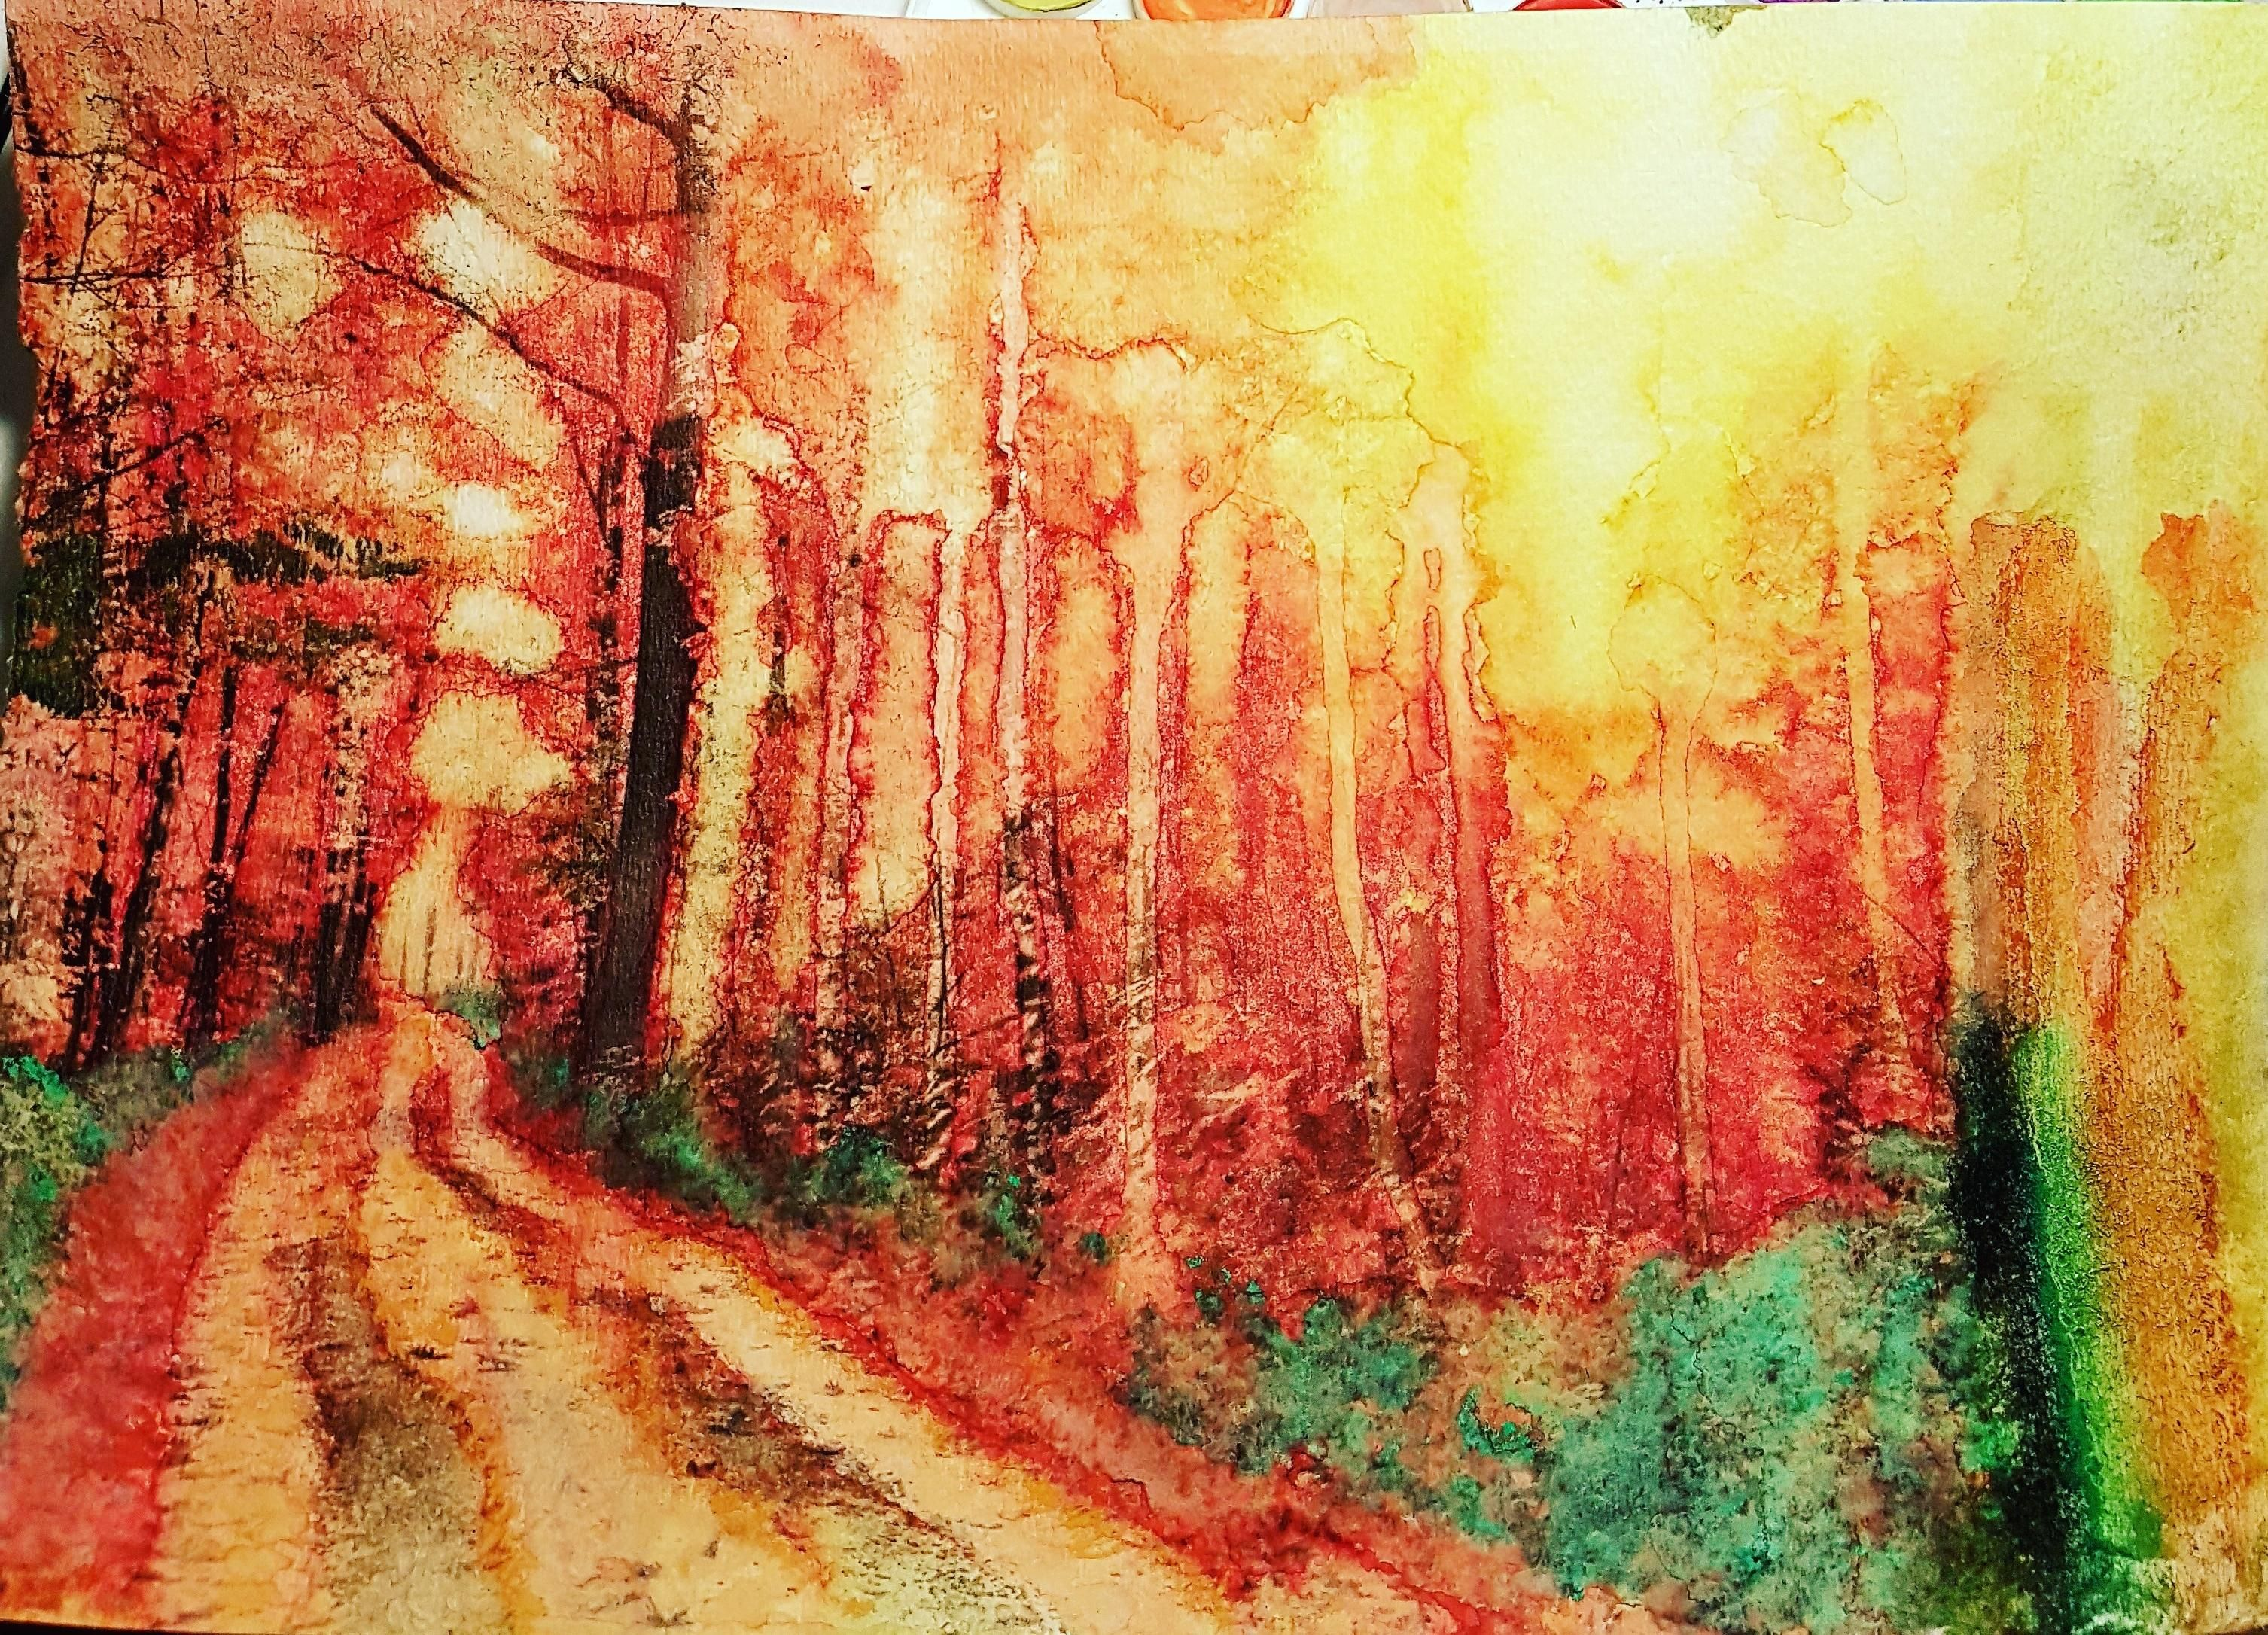 Forest Fire Watercolor 9x12 Elements Of Art Art Watercolor